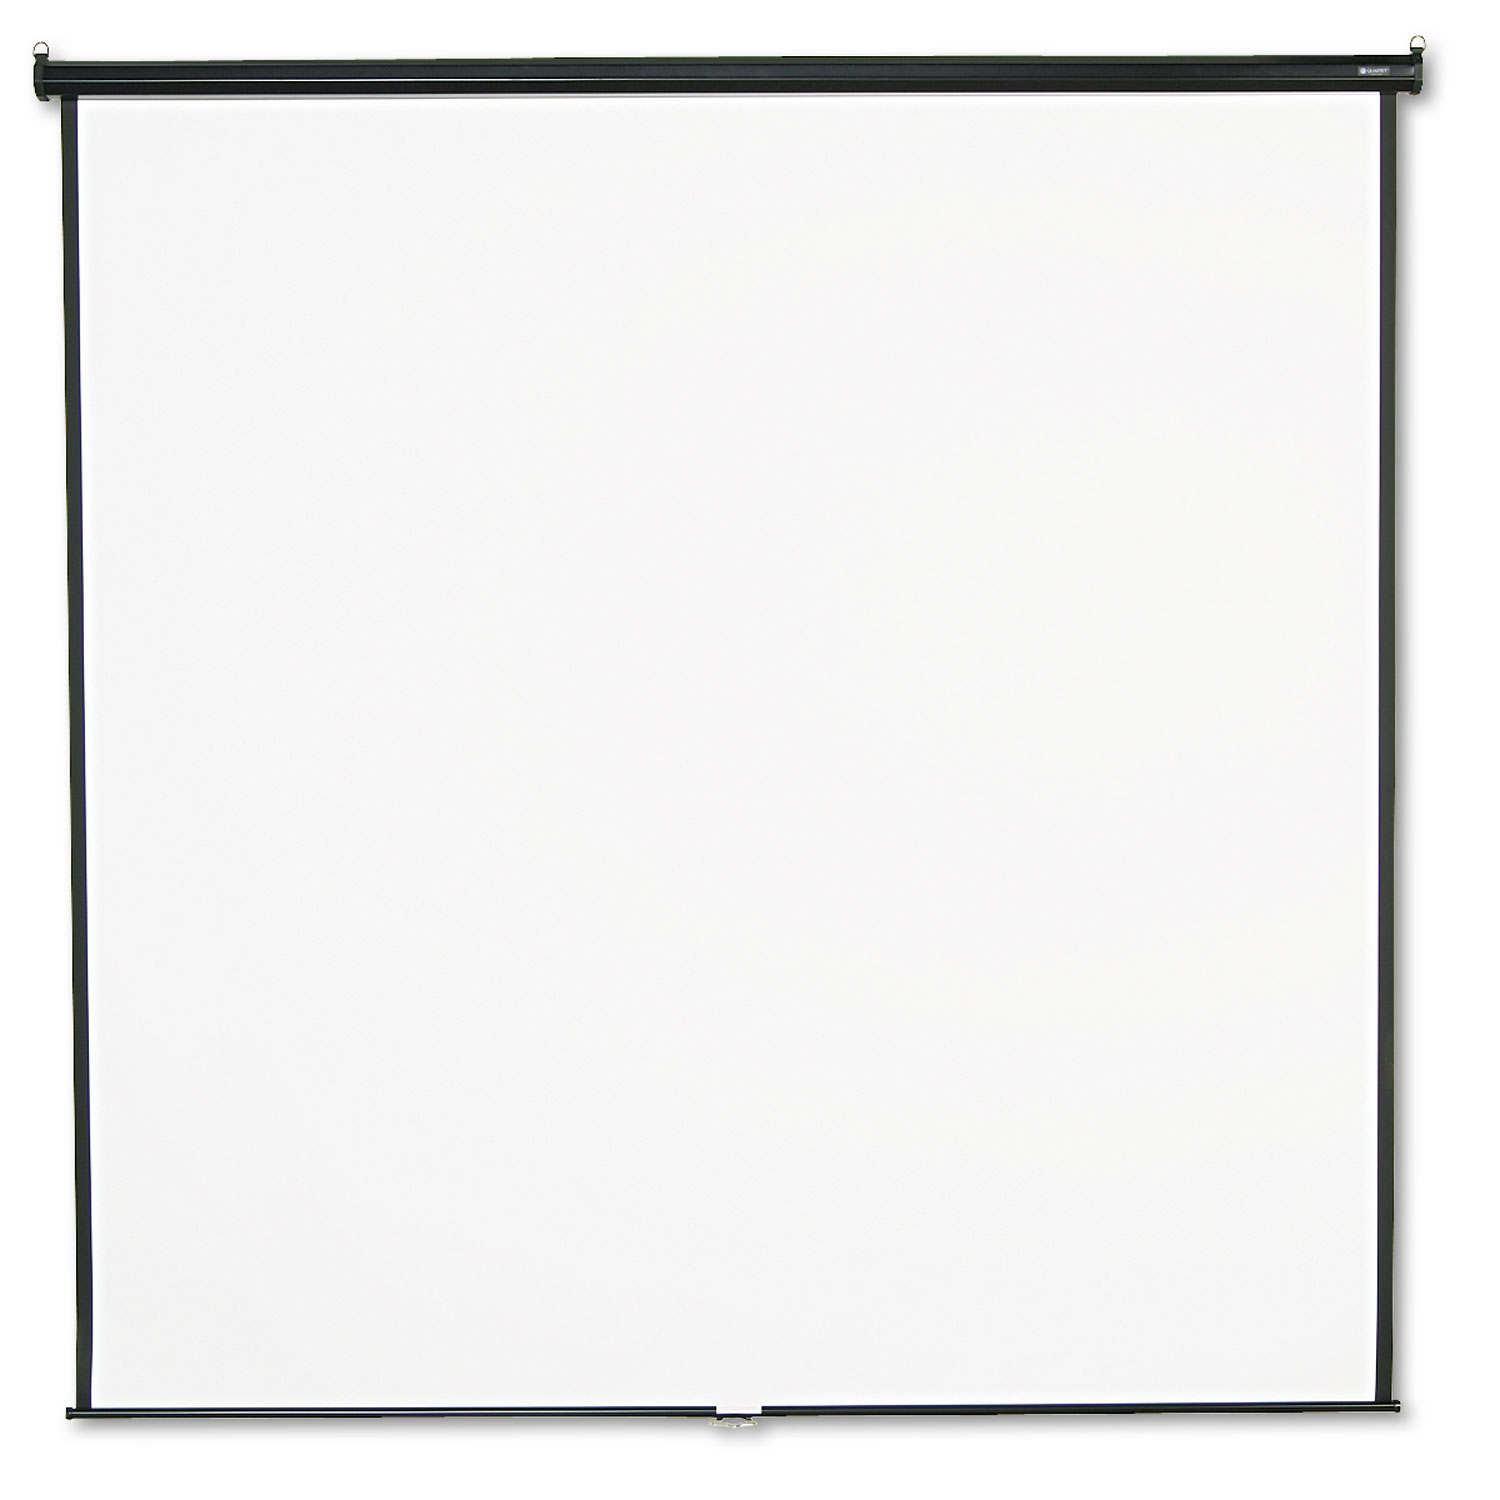 Picture of Wall or Ceiling Projection Screen, 96 x 96, White Matte, Black Matte Casing